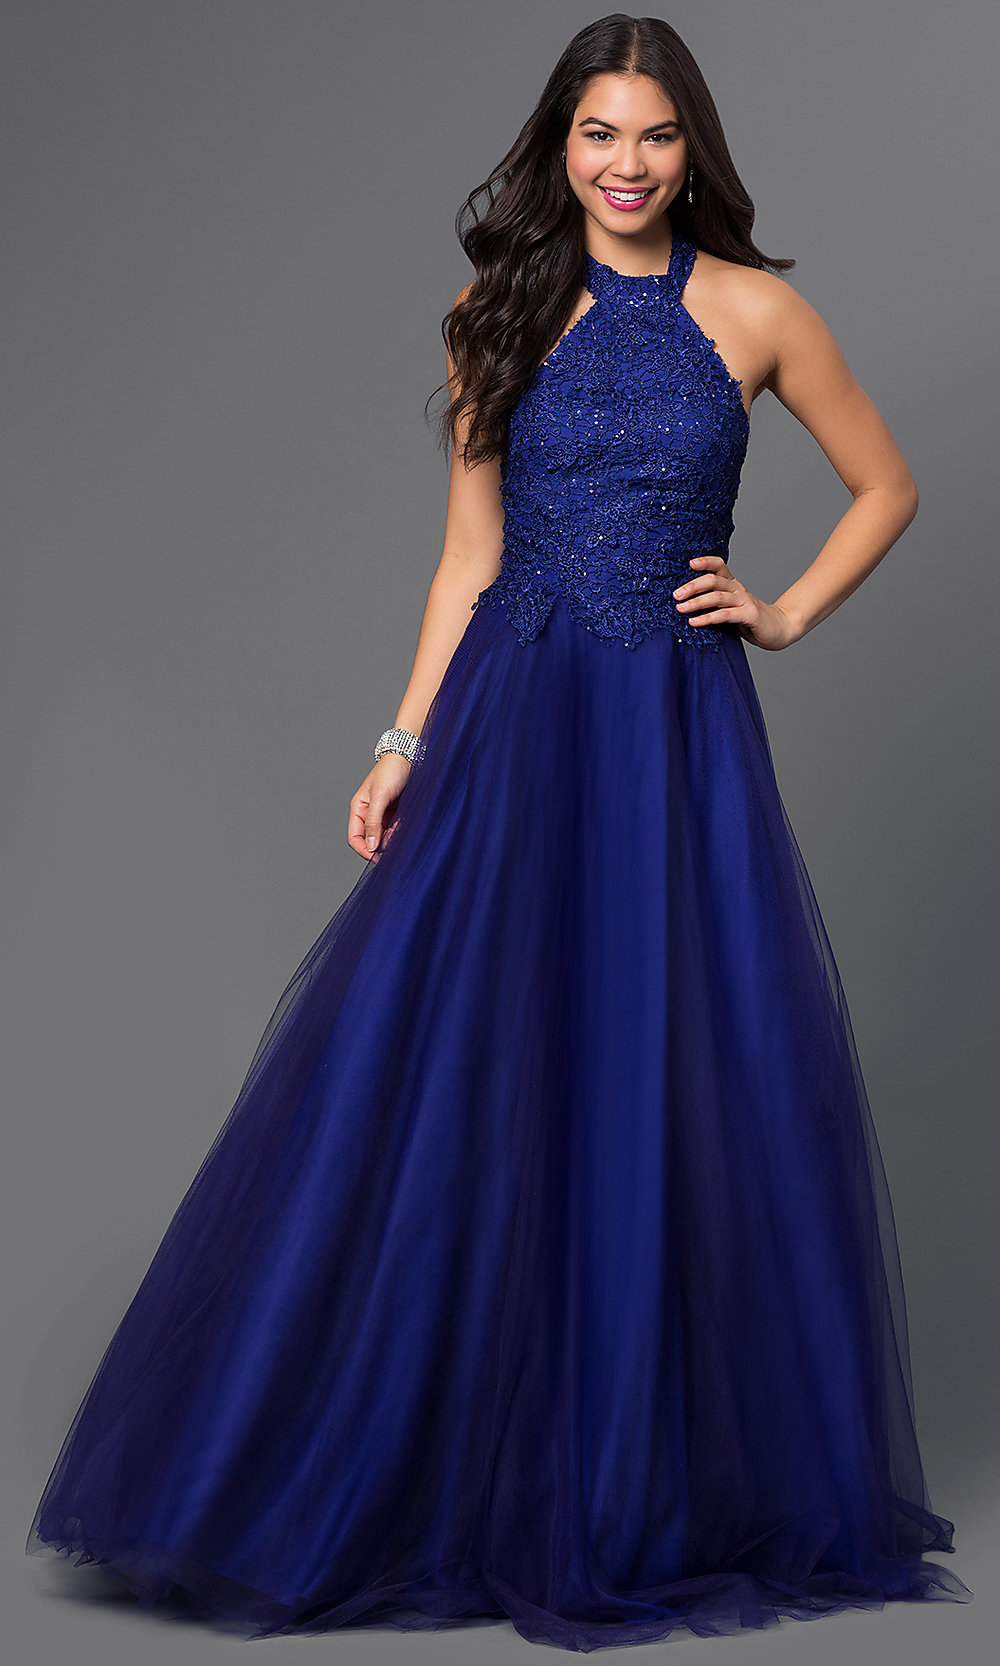 Halter Prom Dress with Lace Brocade  PromGirl